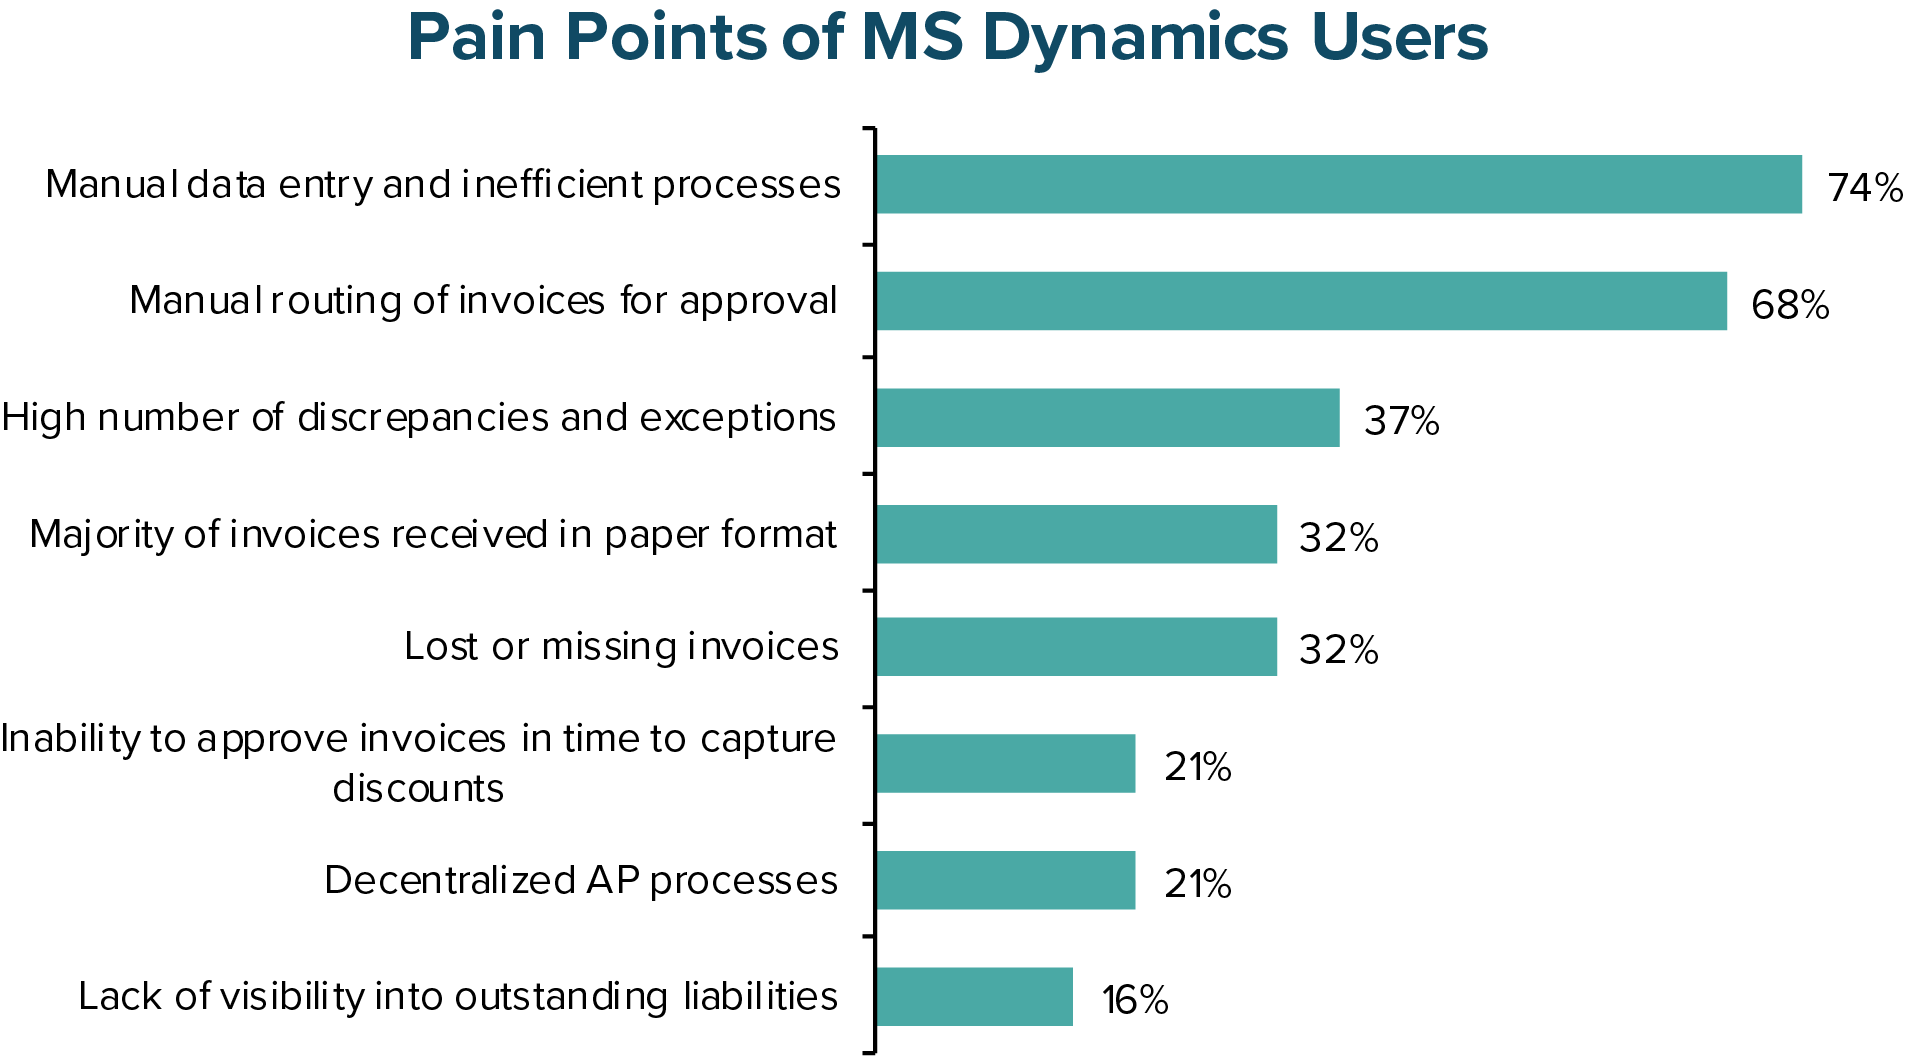 Pain Points of MS Dynamics Users